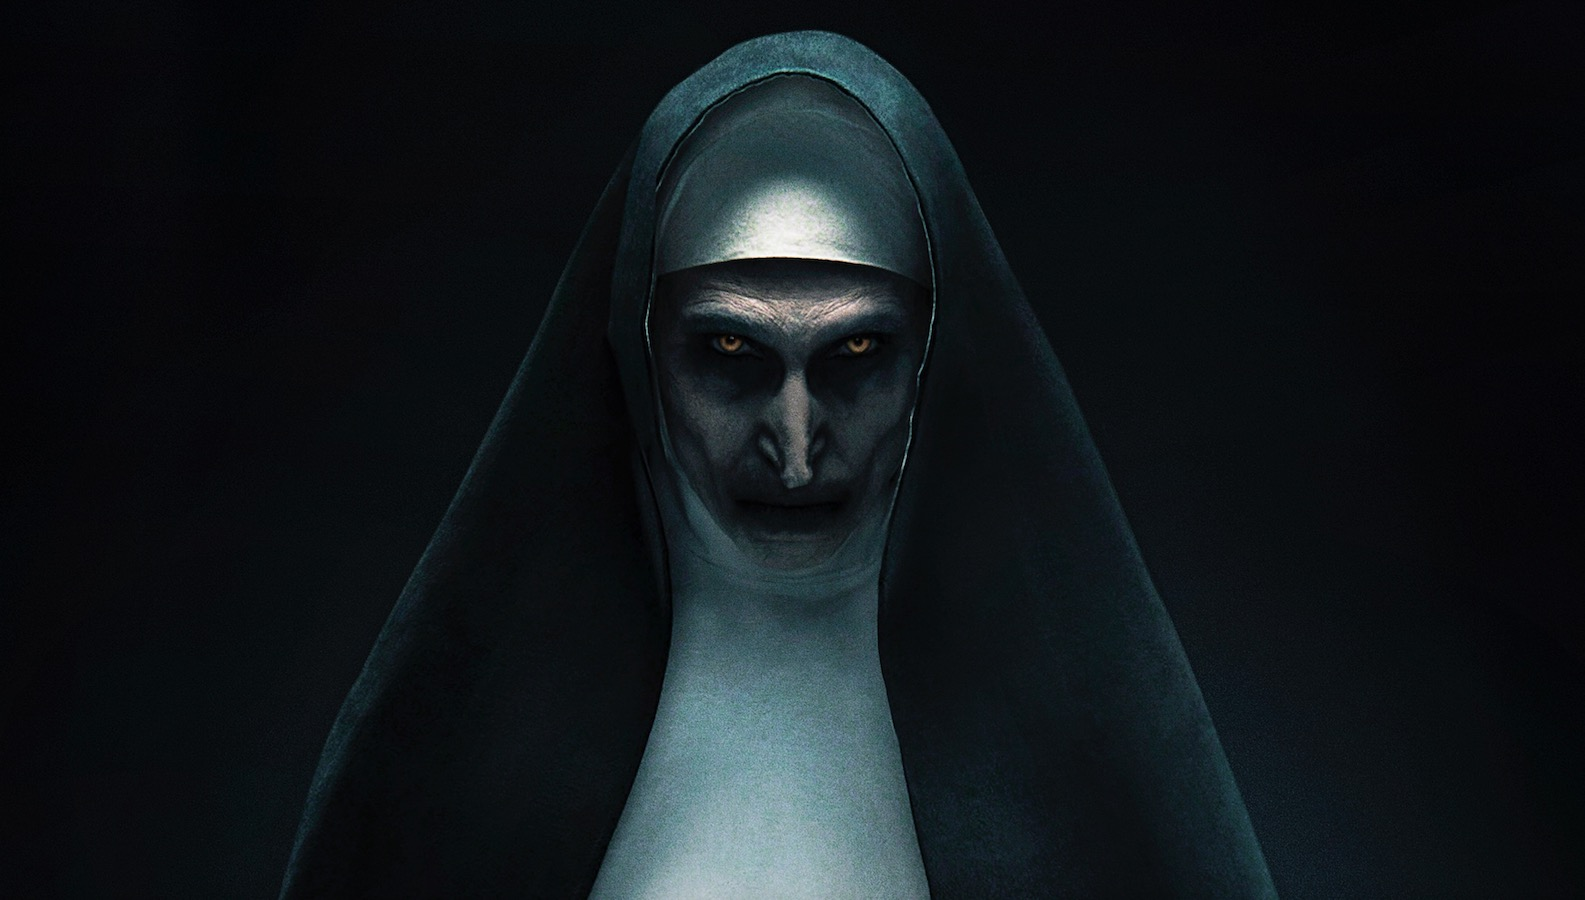 Watch 'The Nun' teaser trailer if you are brave enough